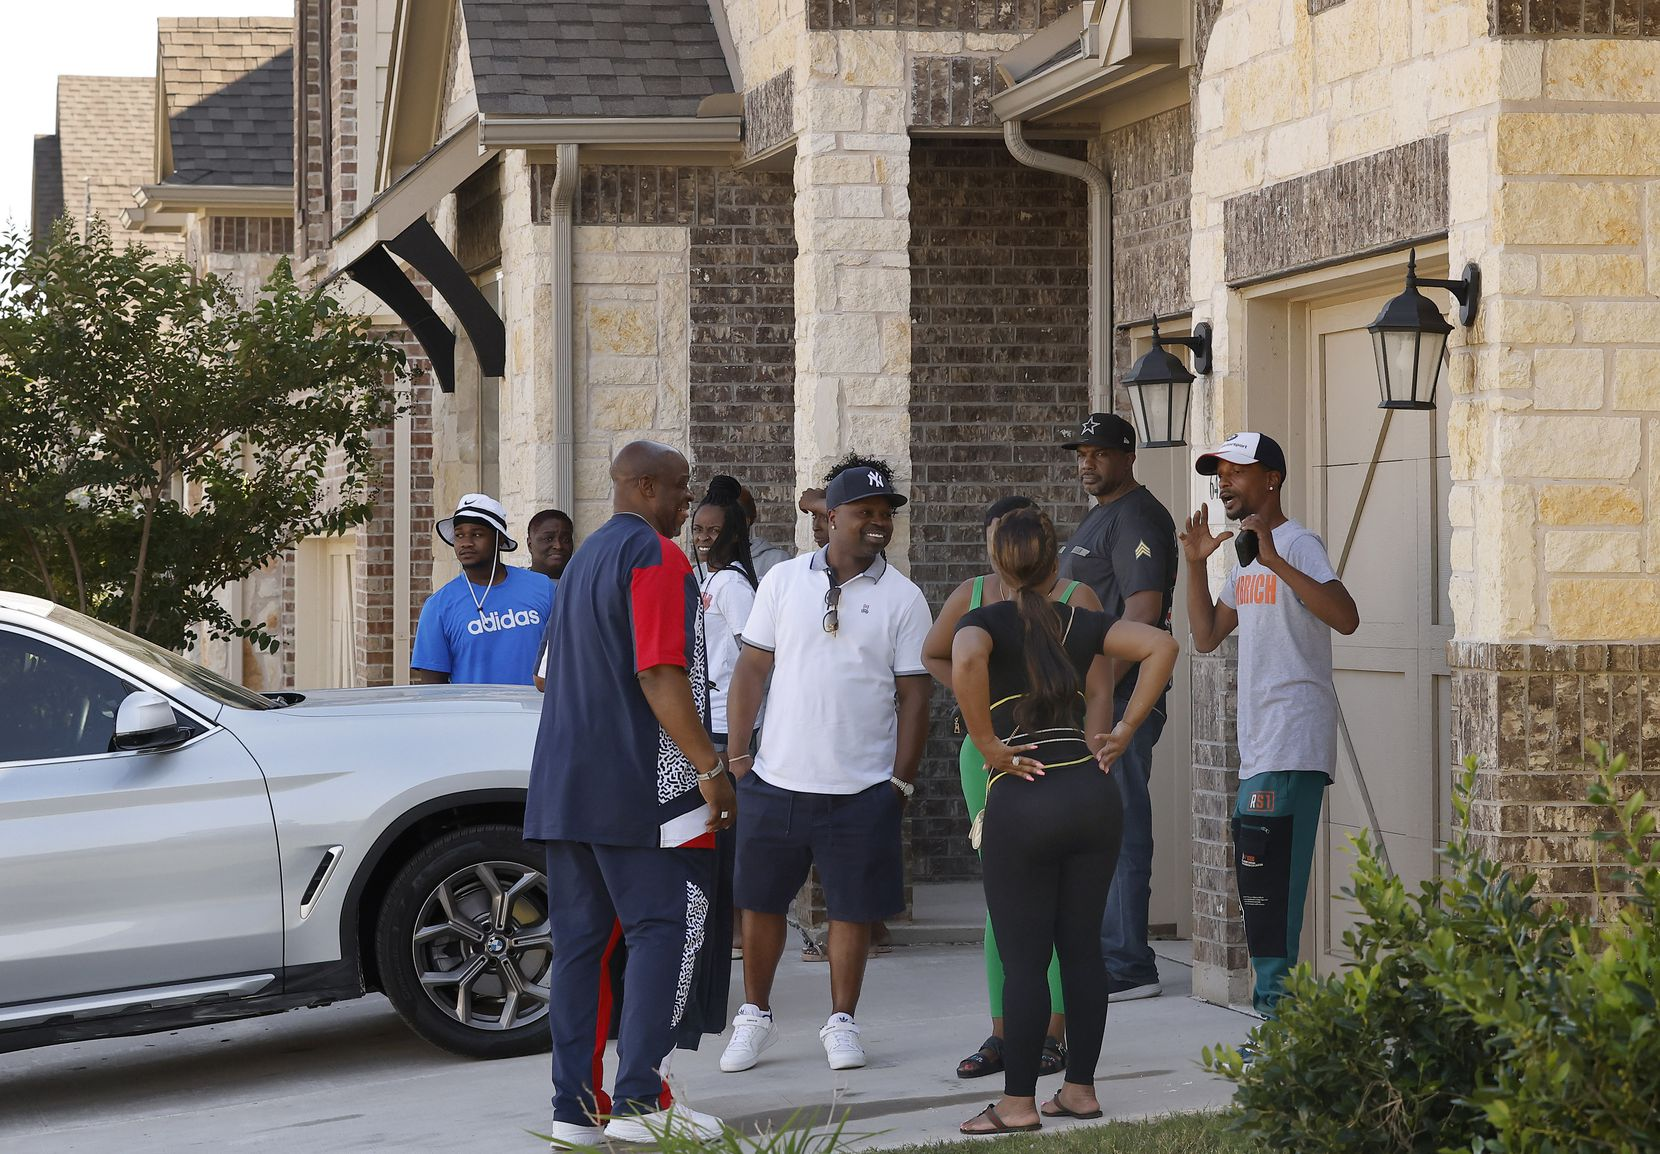 Family and friends of Timothy George Simpkins, 18, who was named as the suspect in the shooting at Timberview High School yesterday, gather outside his Arlington,Texas home Thursday, October 7, 2021. Simpkins was released from the Tarrant County jail.